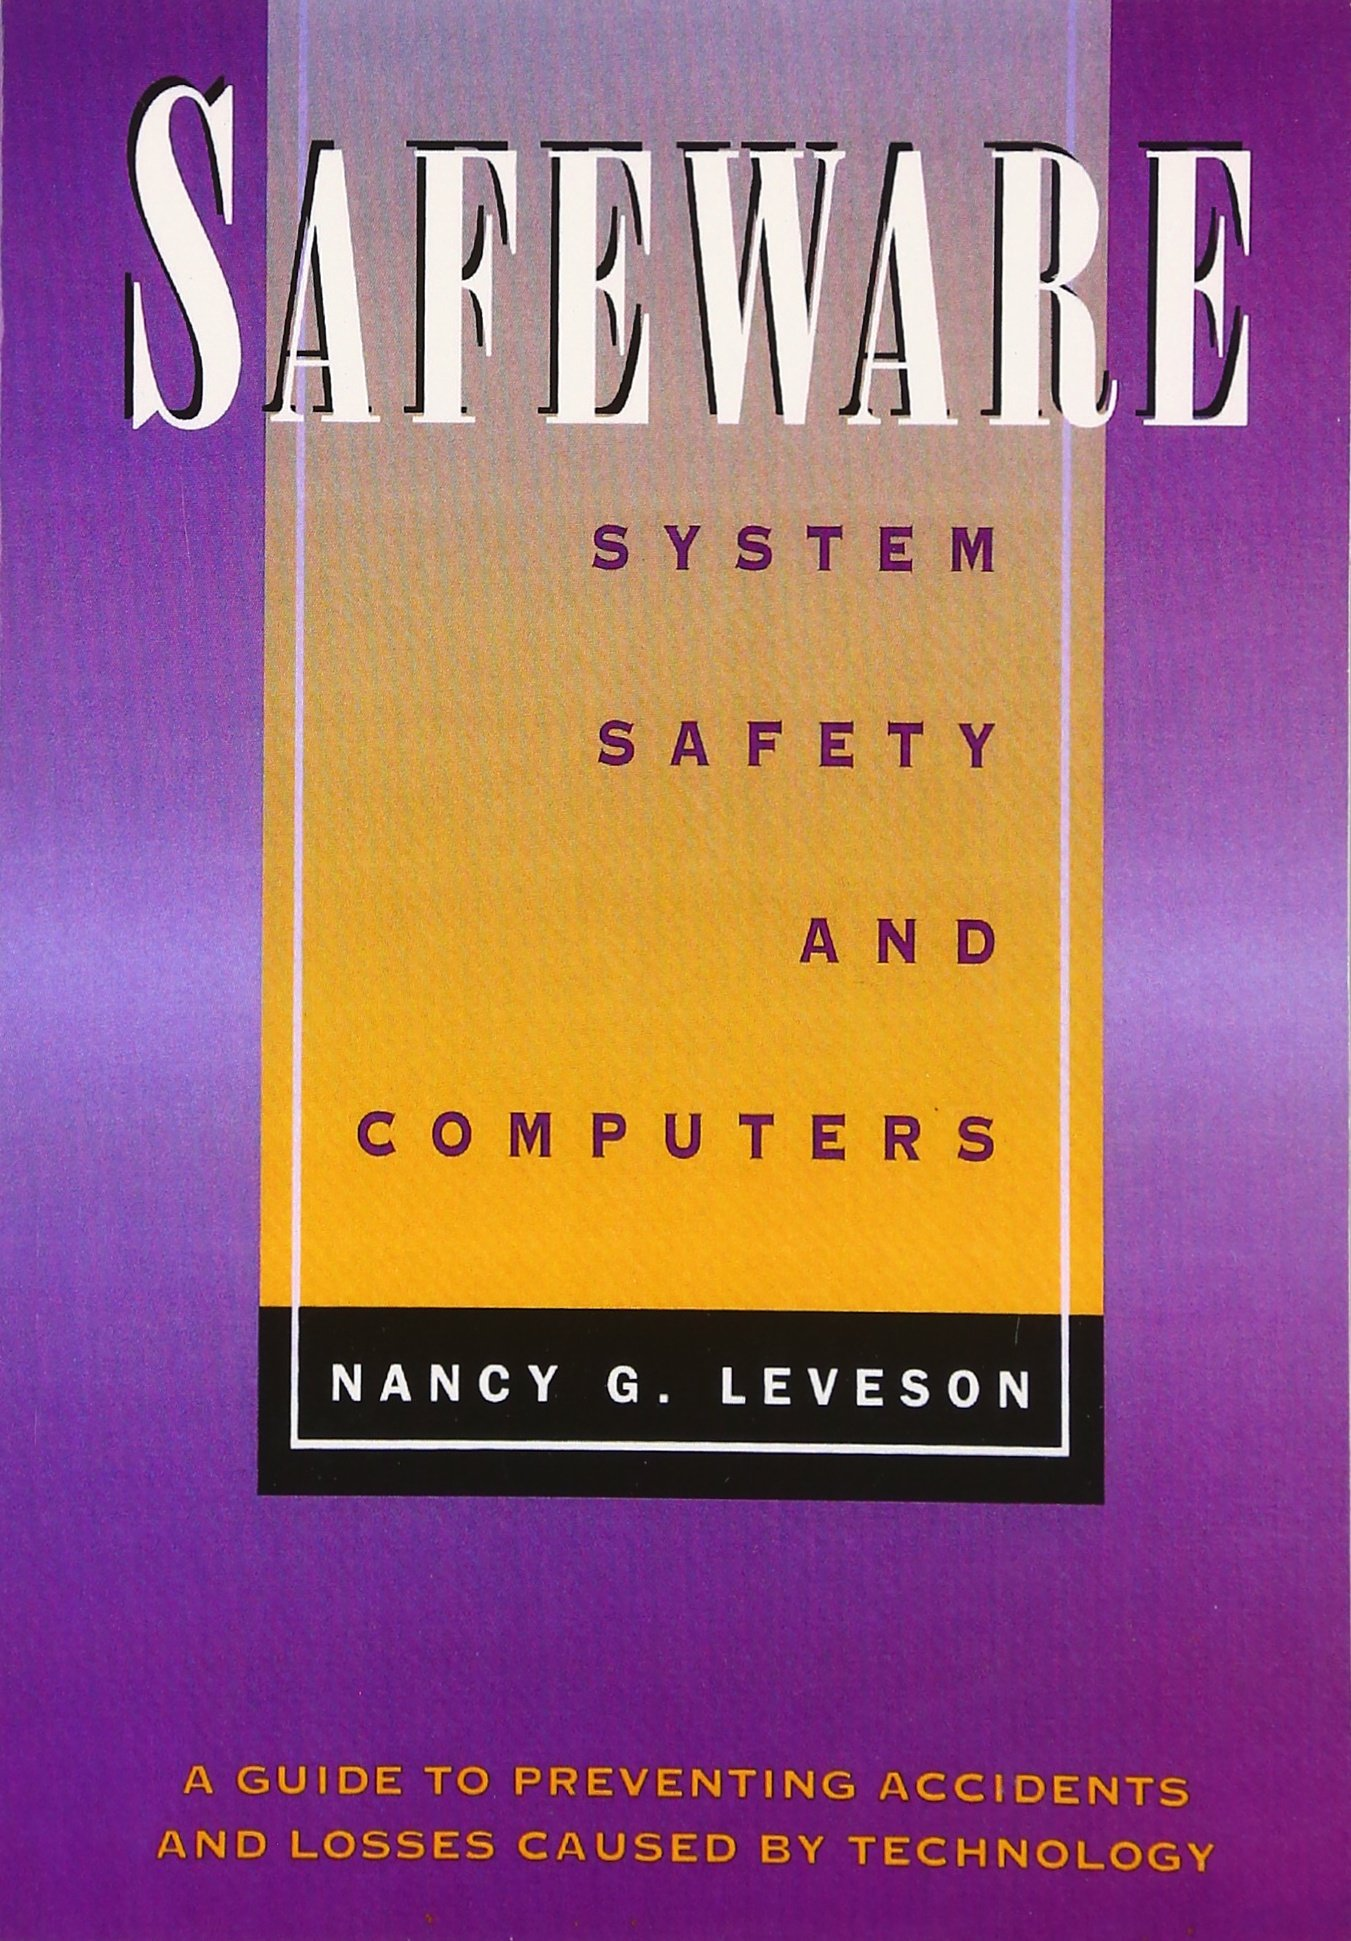 Safeware System Safety And Computers Series 19 Amazon Co Uk Leveson Nancy G 0785342119725 Books